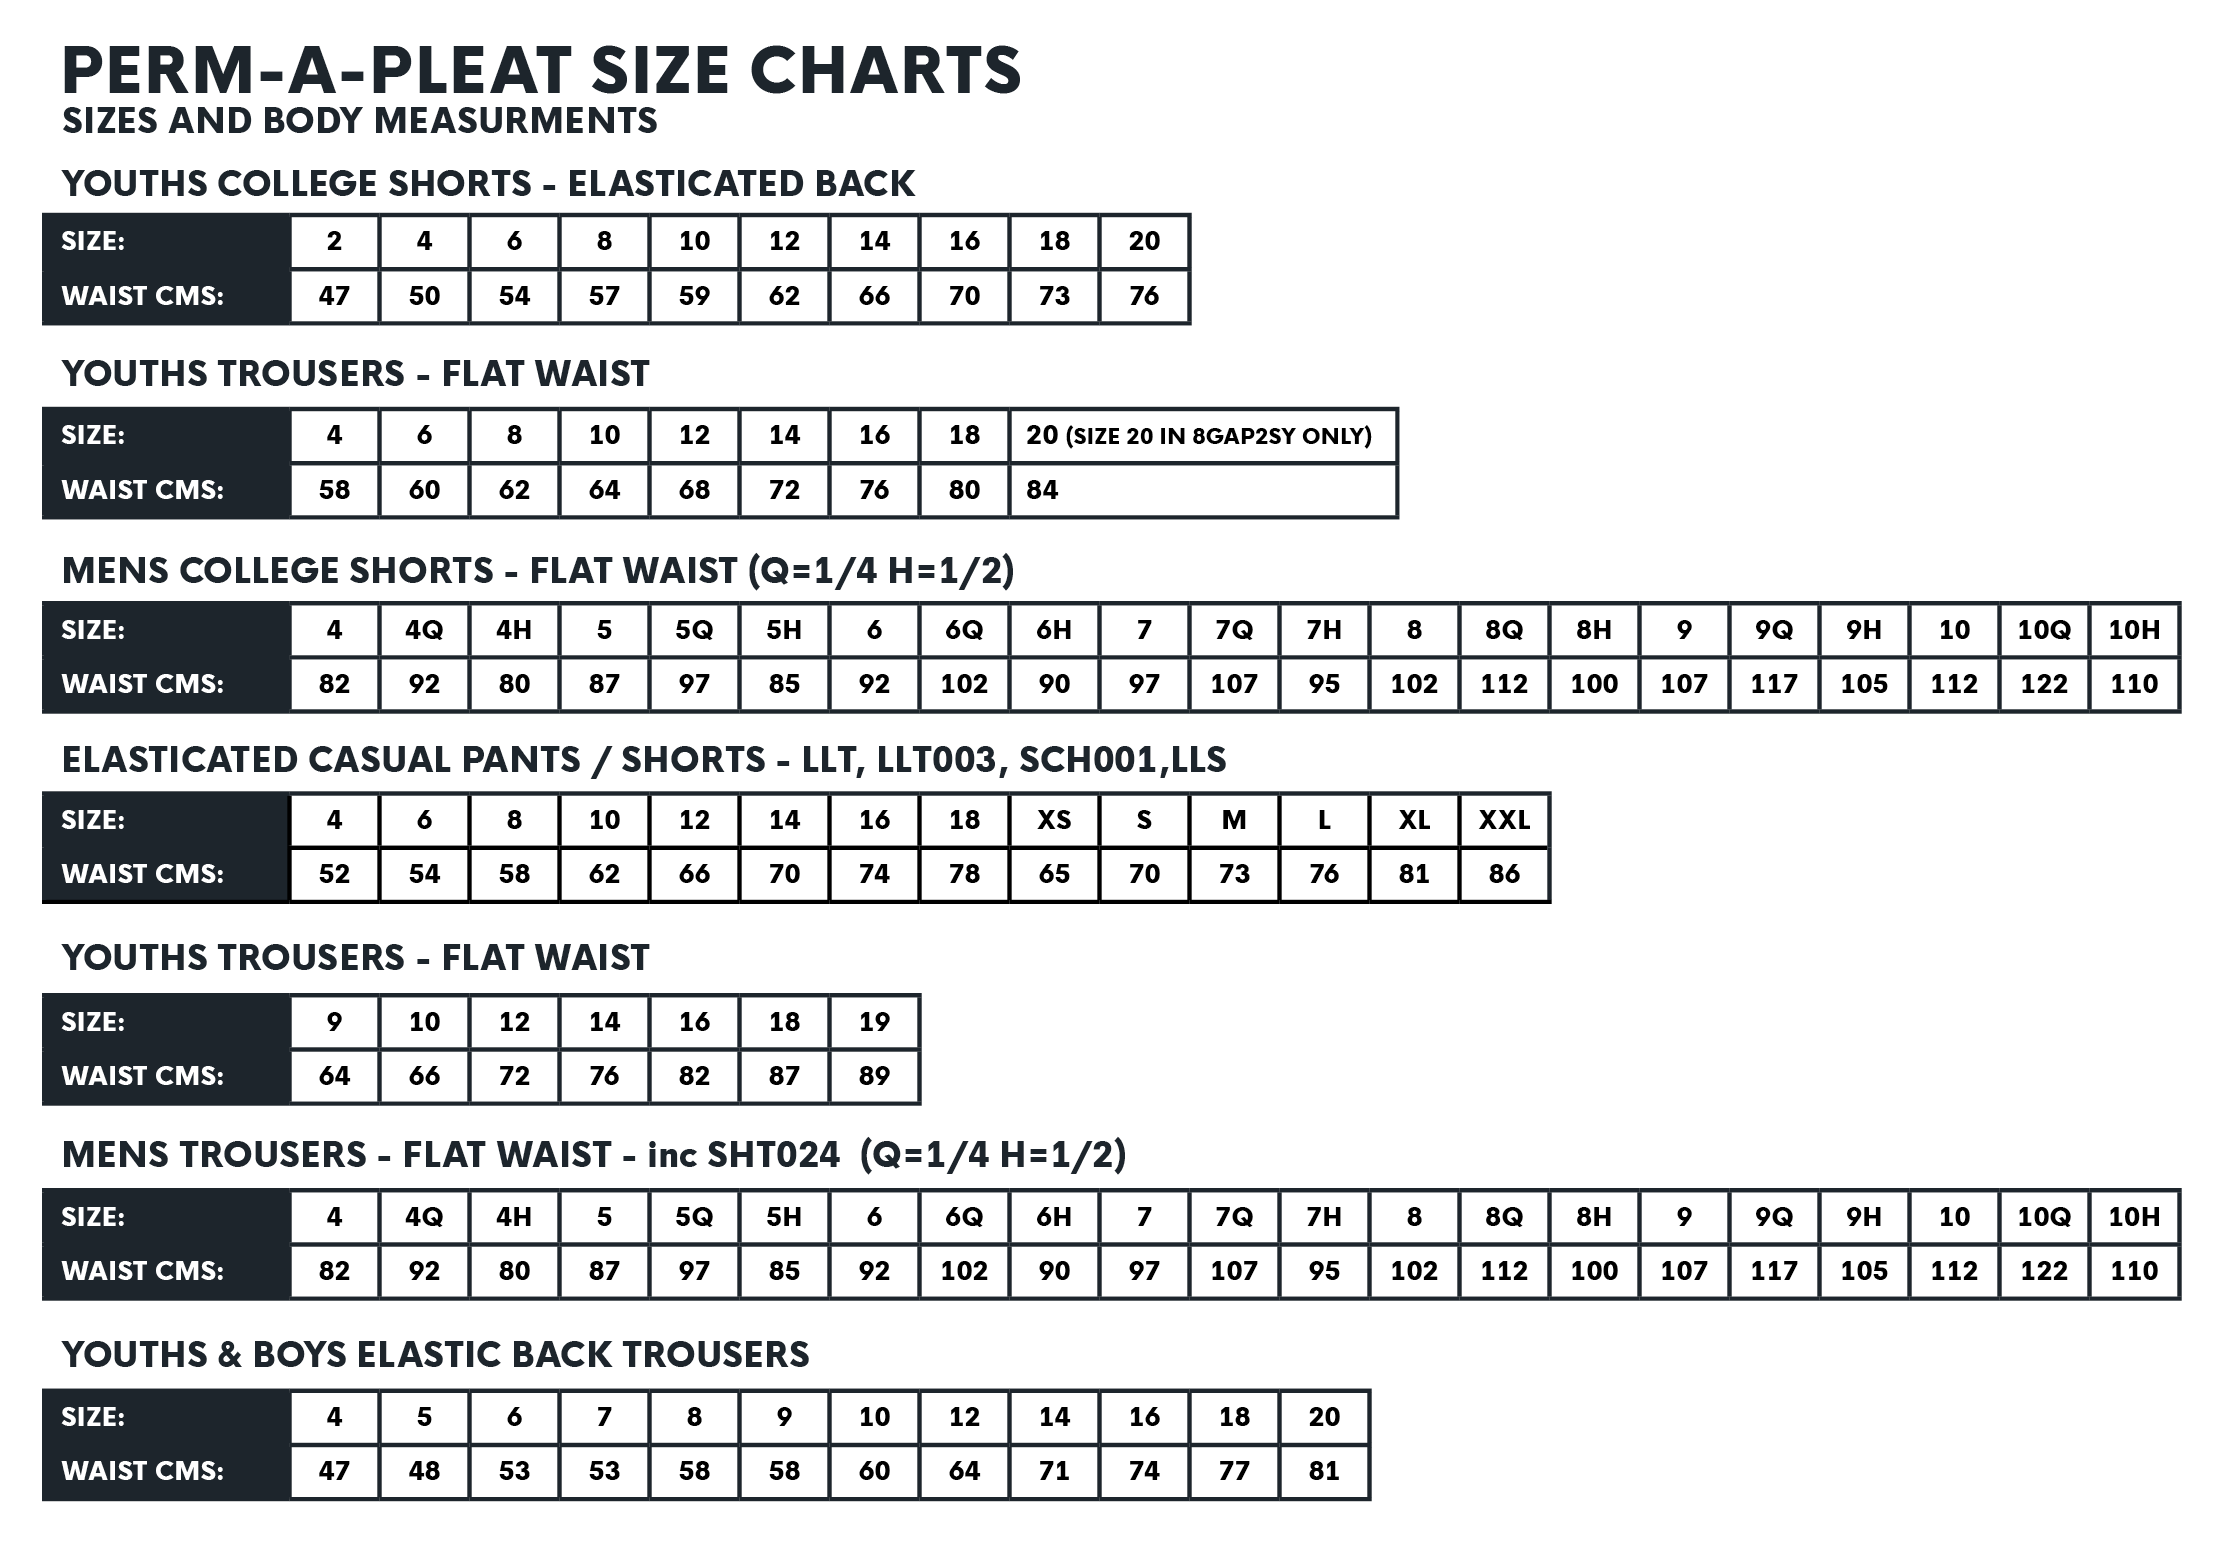 perm-a-pleat size chart.png